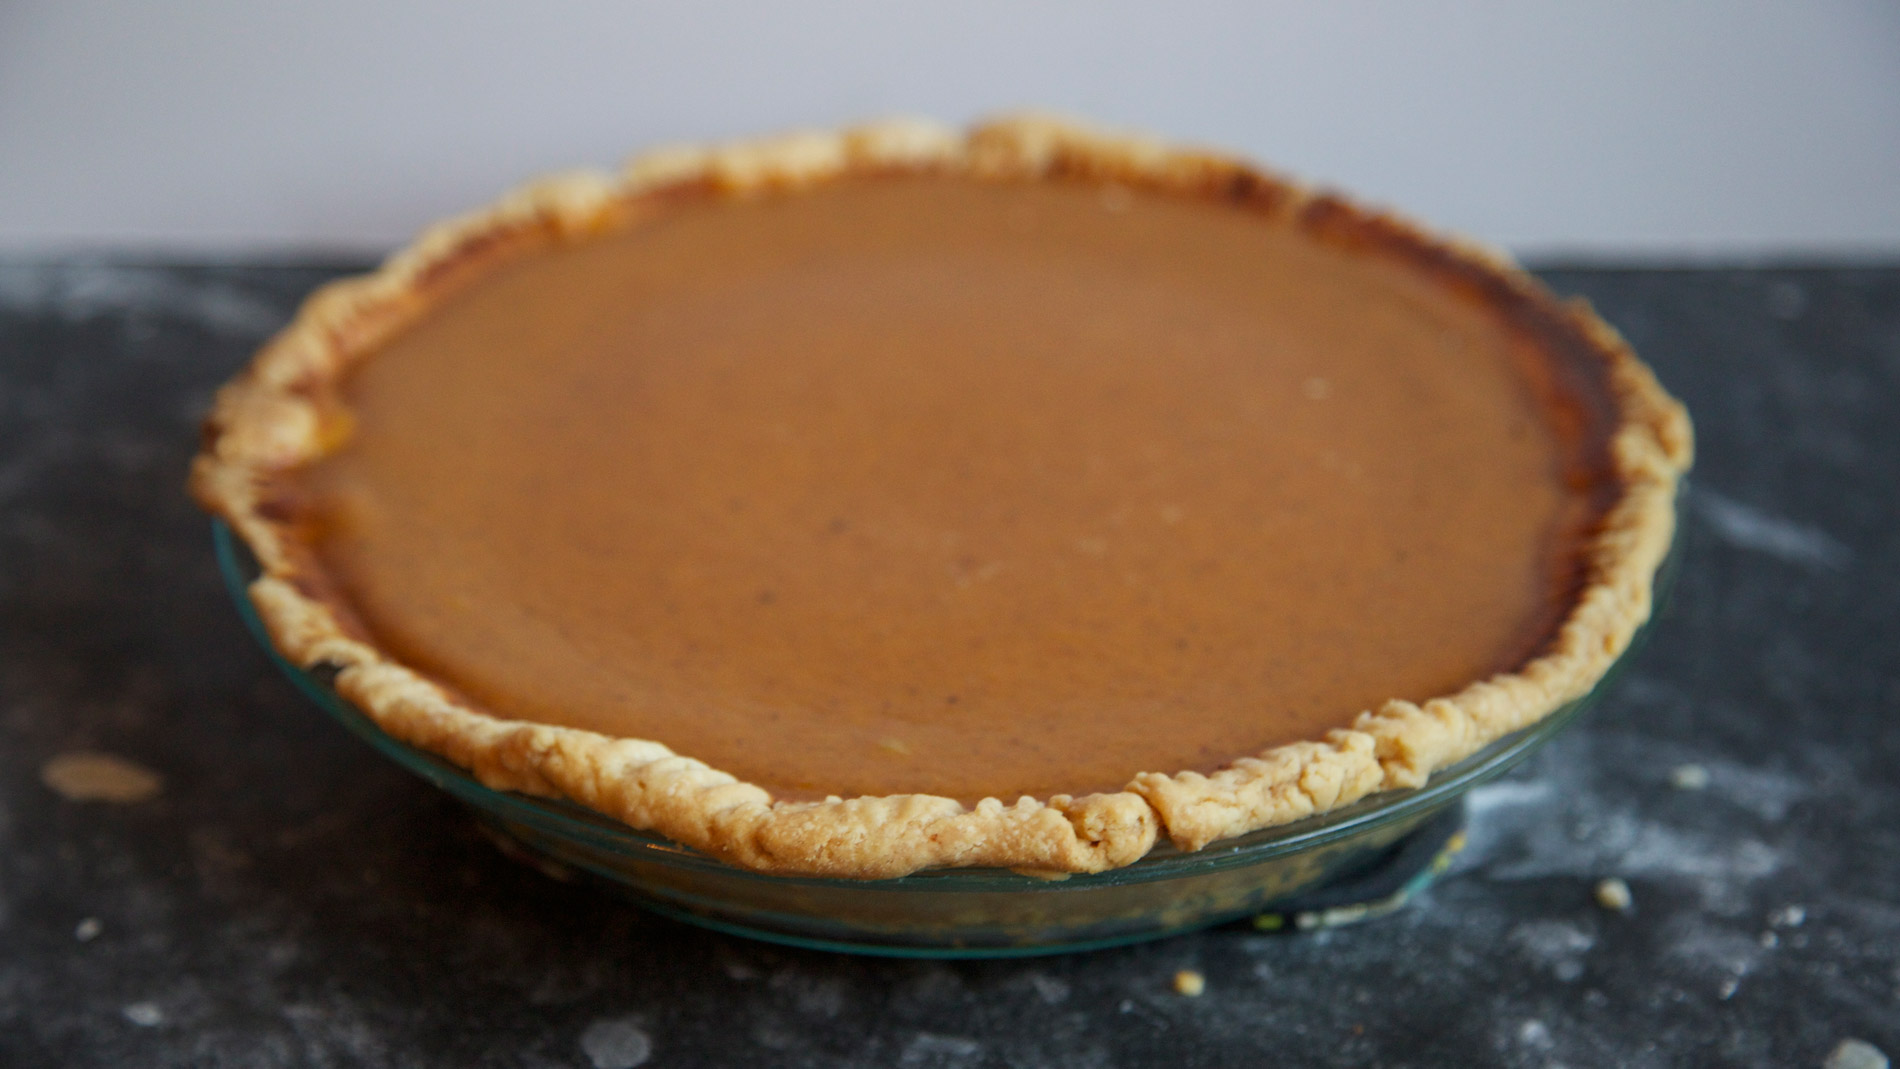 Pumpkin Pie & The Best Pie Dishes: Our Reviews